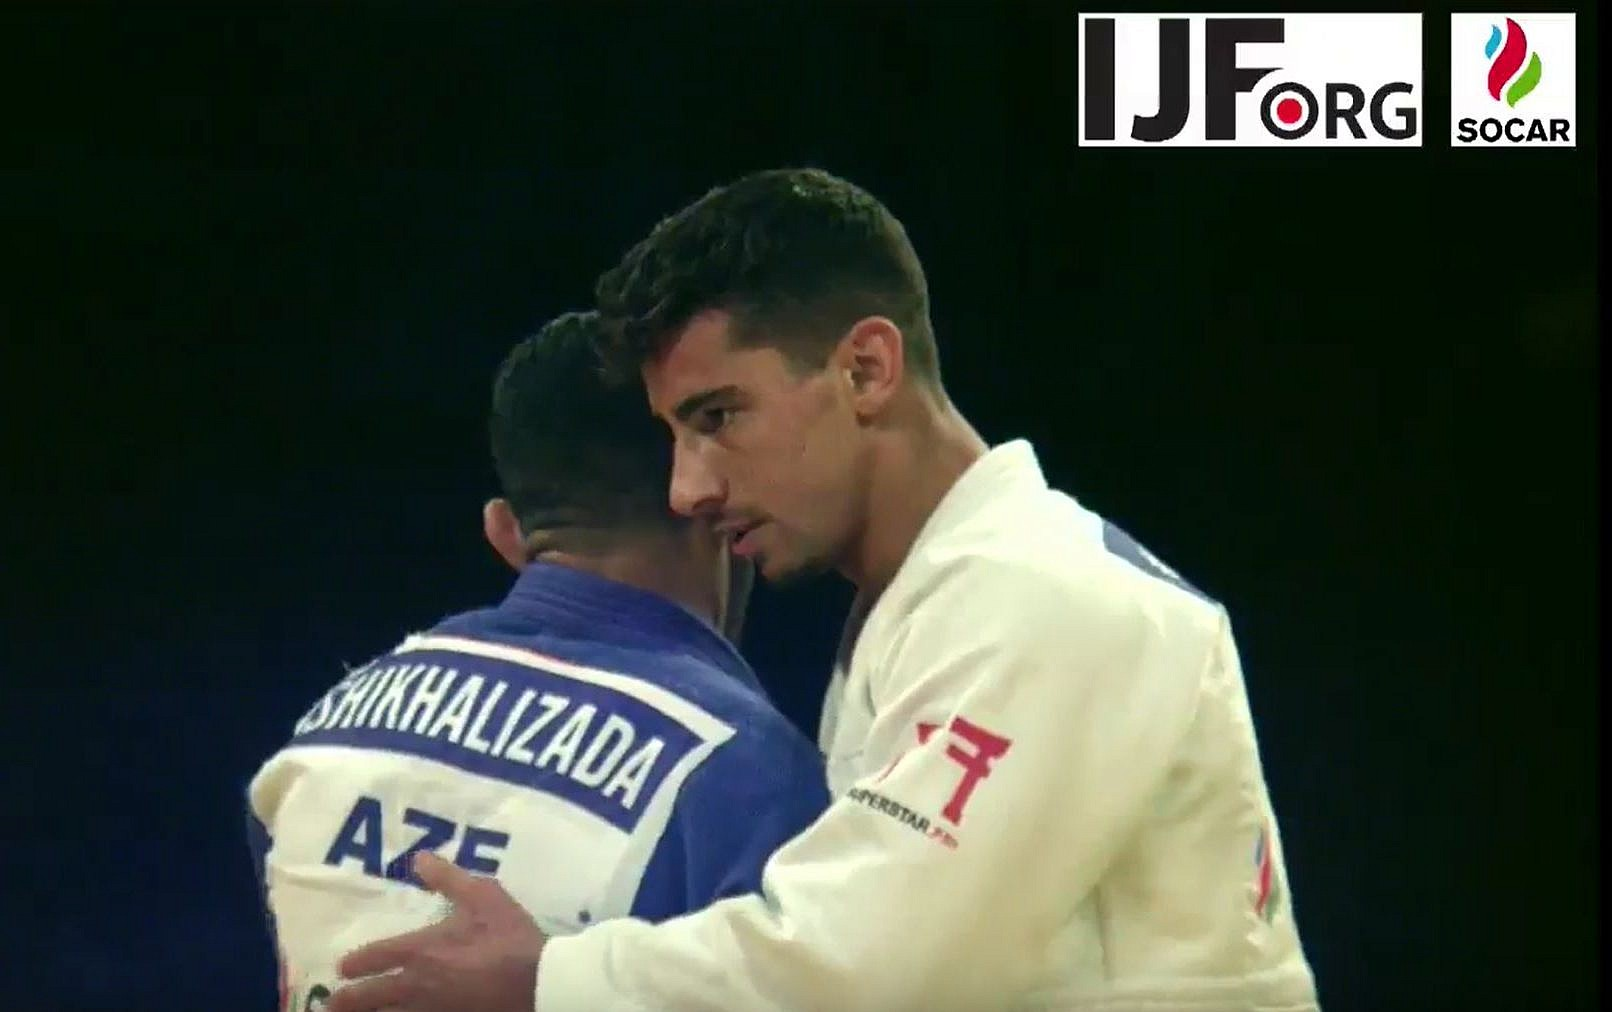 Israeli judo champion sings Israeli anthem to himself since Abu Dhabi wouldn't play it